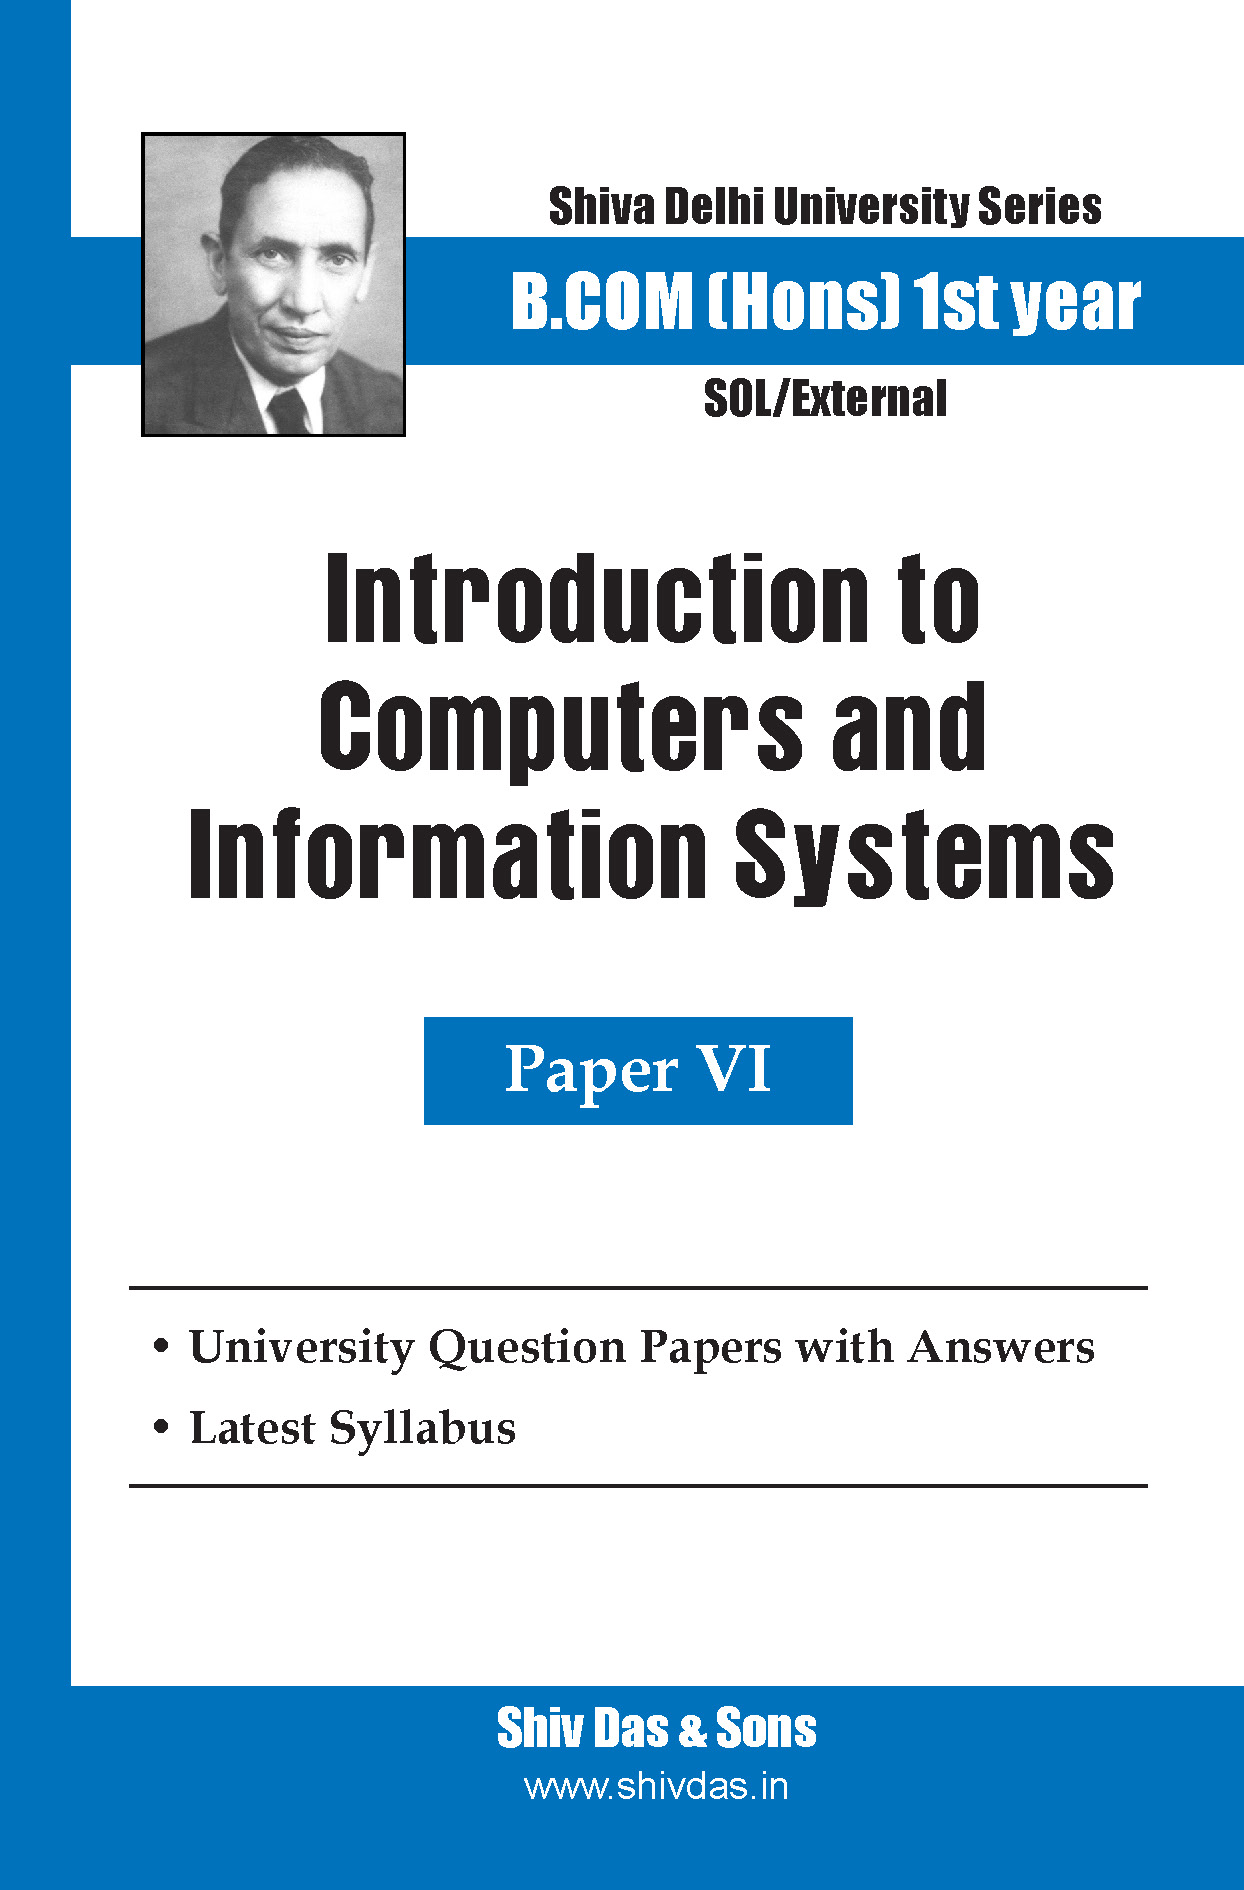 Introduction to Computers and Information Systems B.Com Hons 1st Year-SOL/External